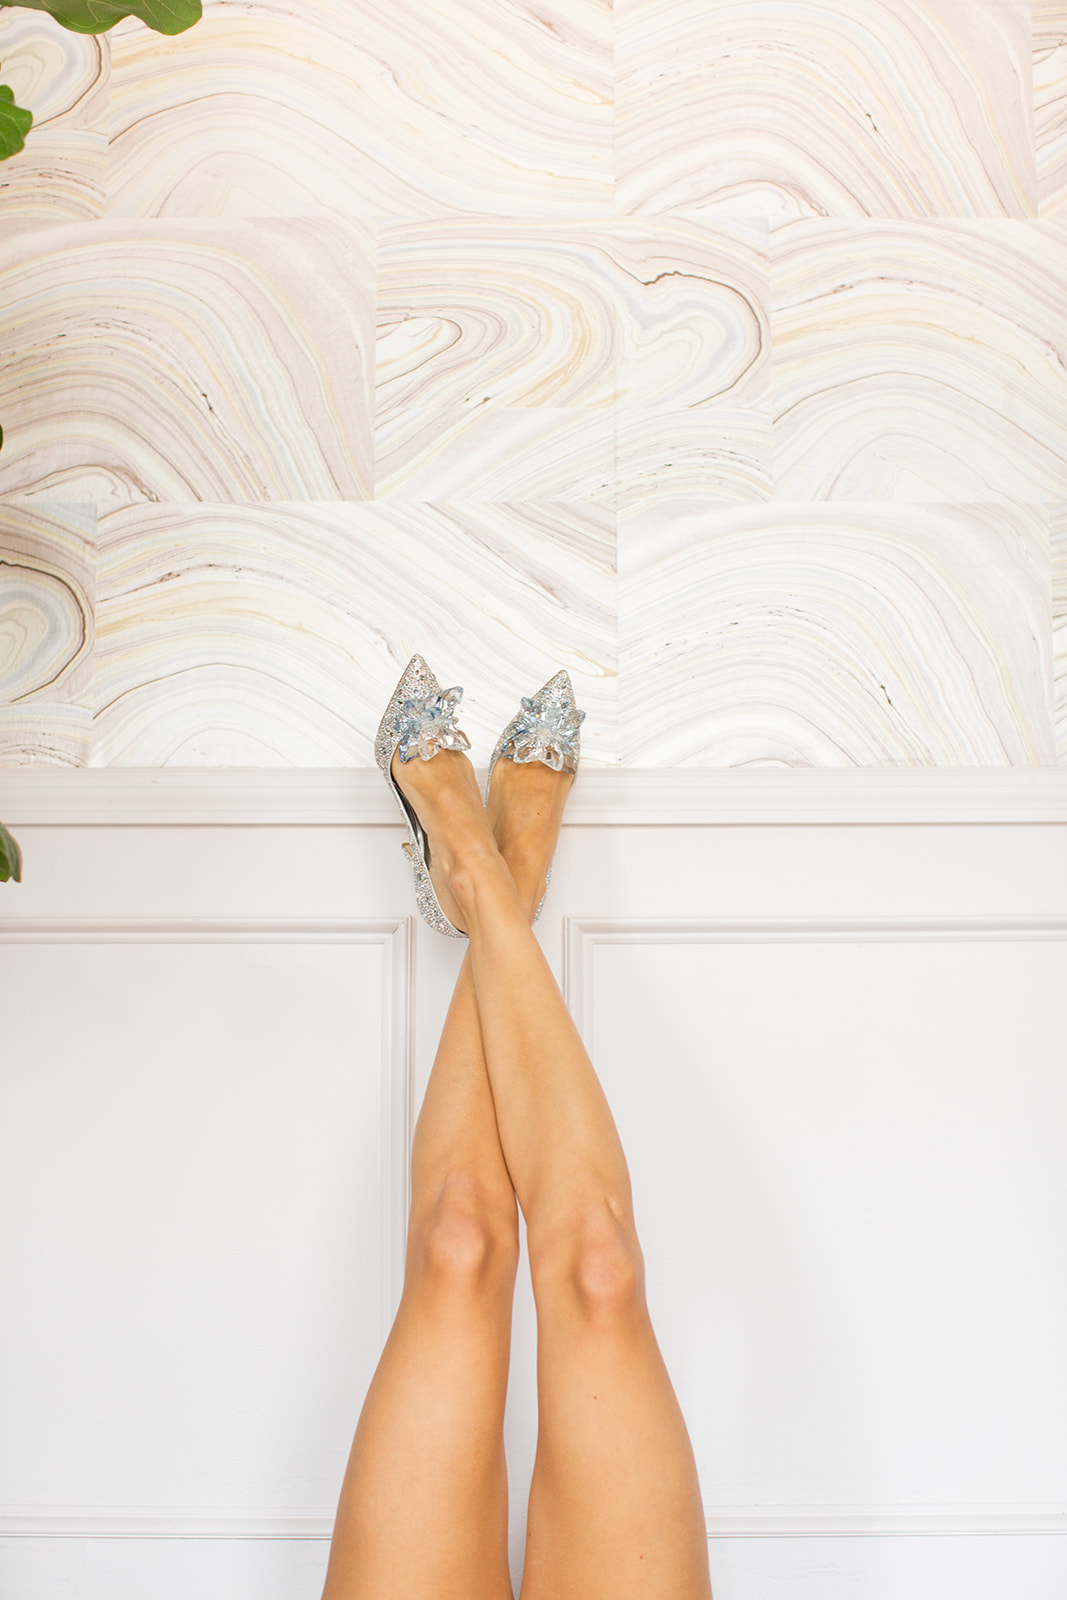 ALIA Crystal Covered Pointy Toe Pumps by Jimmy Choo featuring slender legs against a wall. By Santa Barbara wedding photographer Sarah Ellefson.